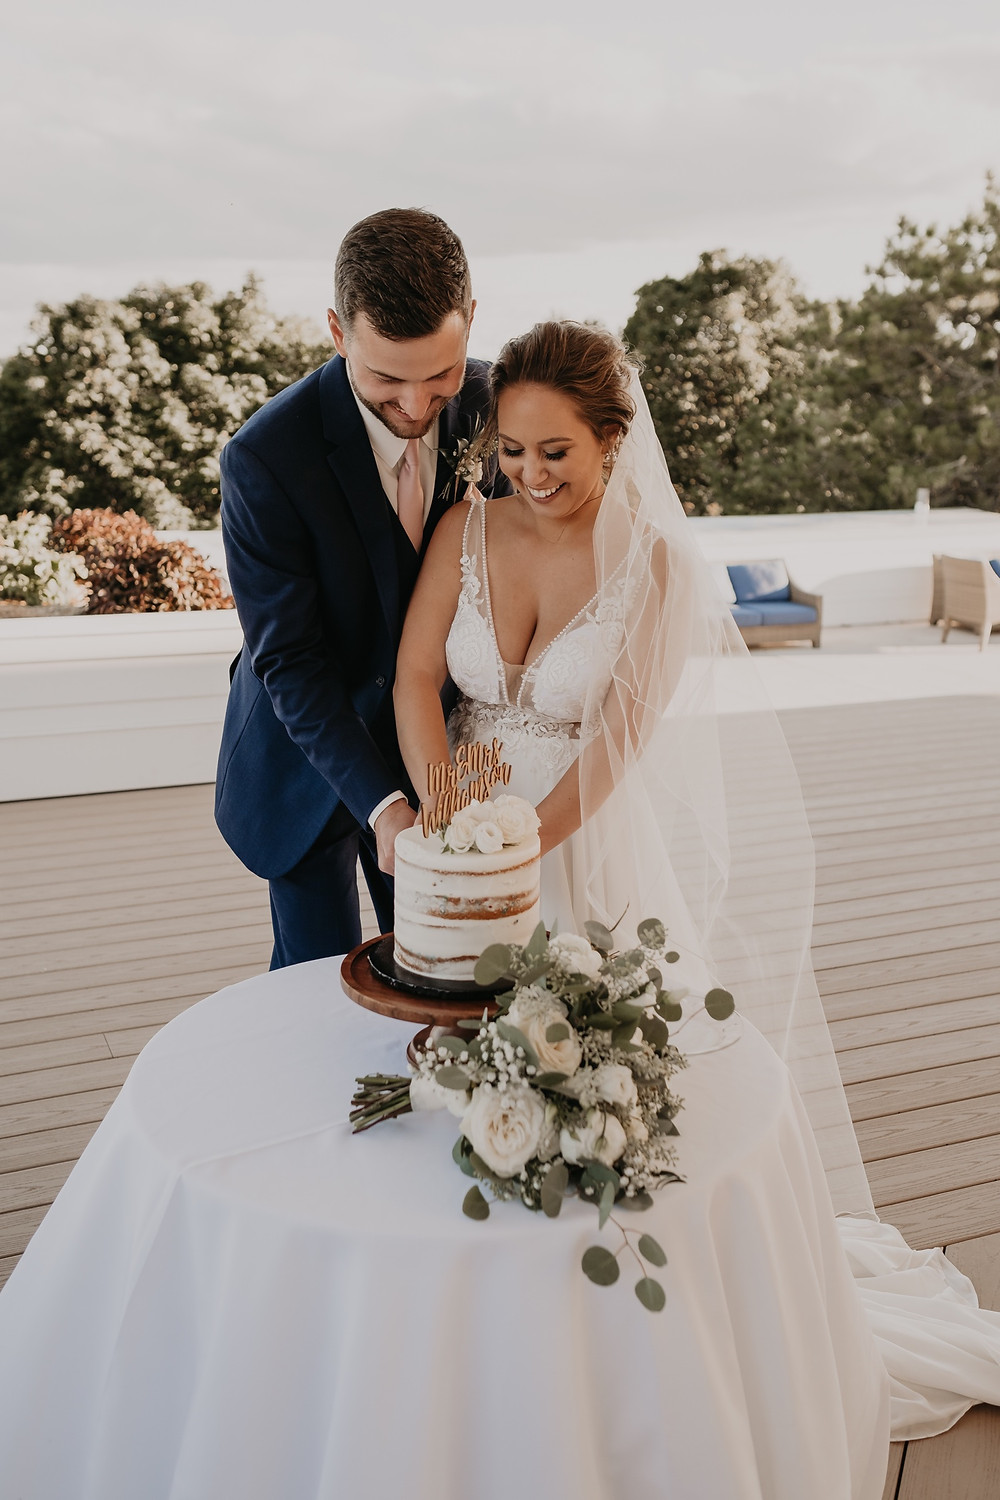 Bride and groom cutting cake. Photographed by Nicole Leanne Photography.